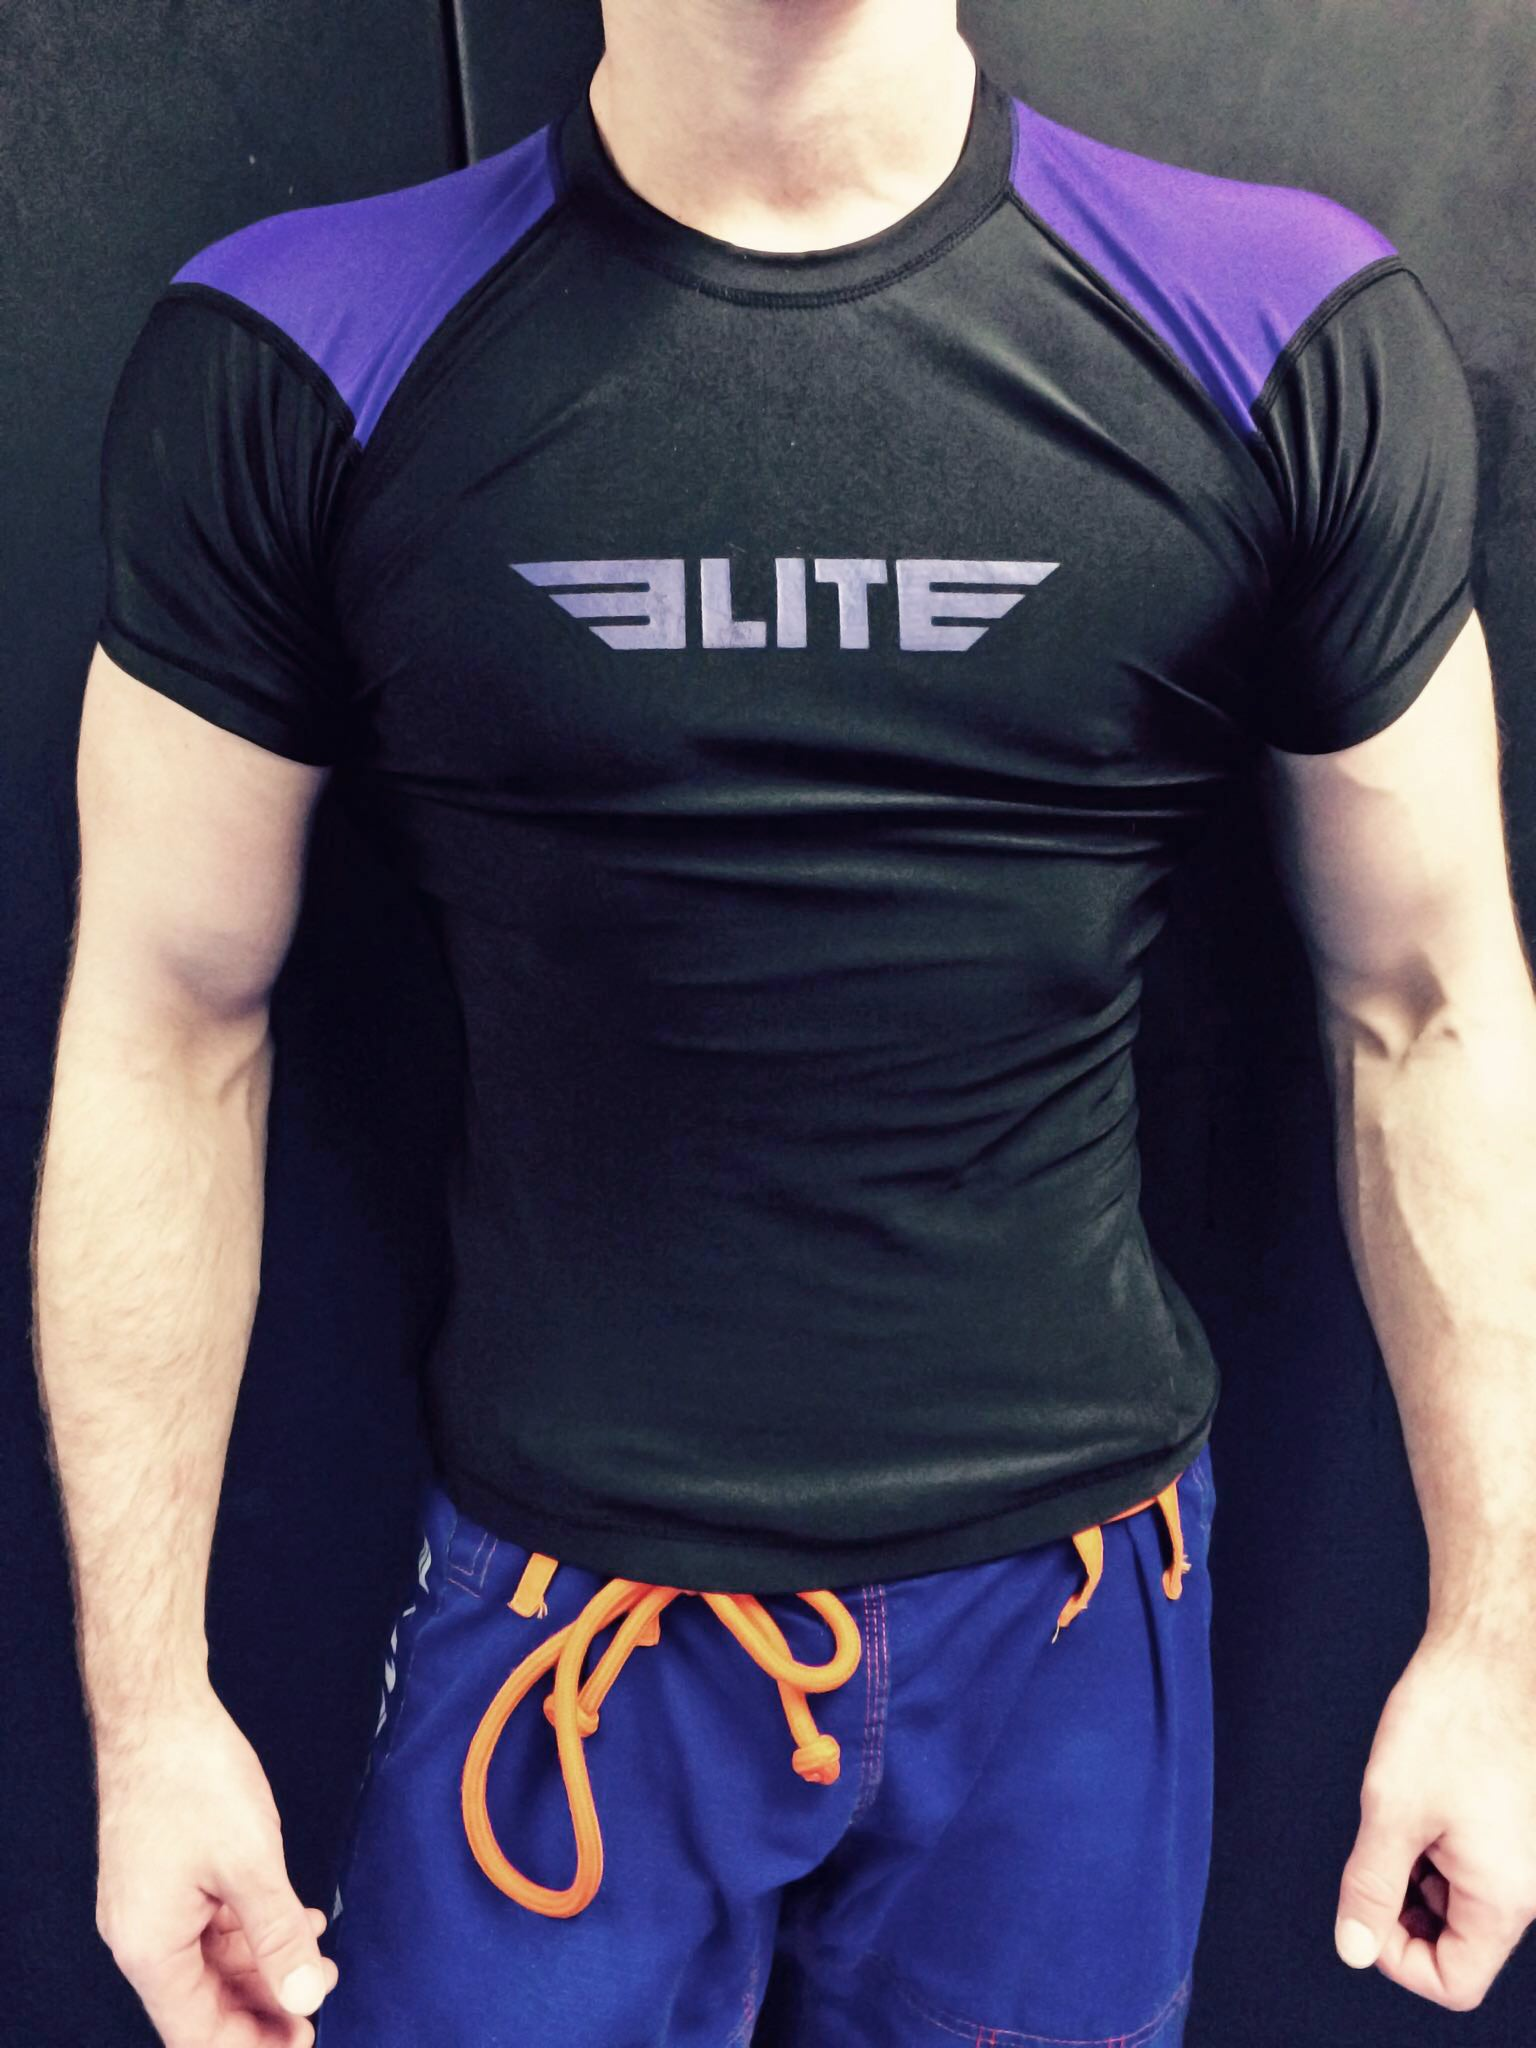 Elite sports Team Elite BJJ Ryan Pasfield image7.jpg